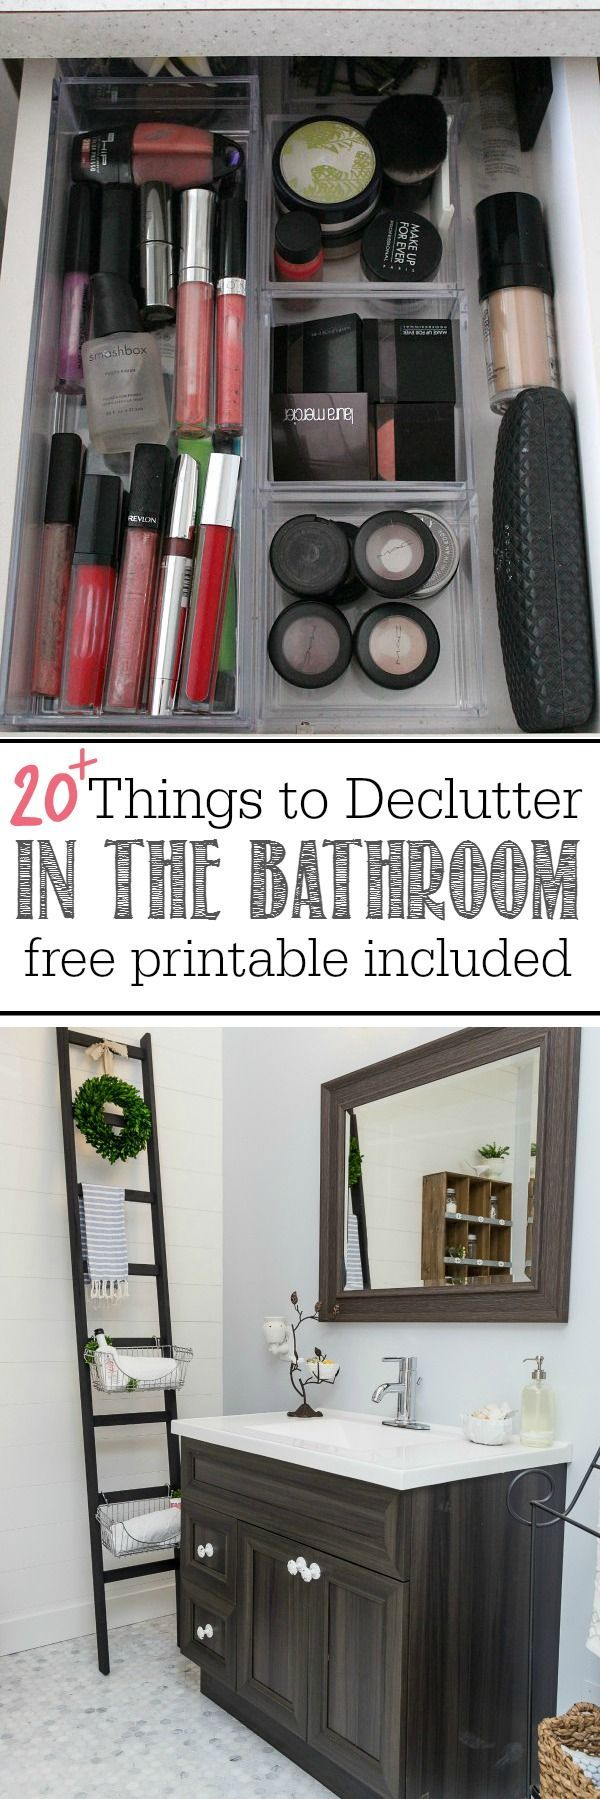 Follow these bathroom decluttering tips and download your free printable for 20 things to declutter from the bathroom!